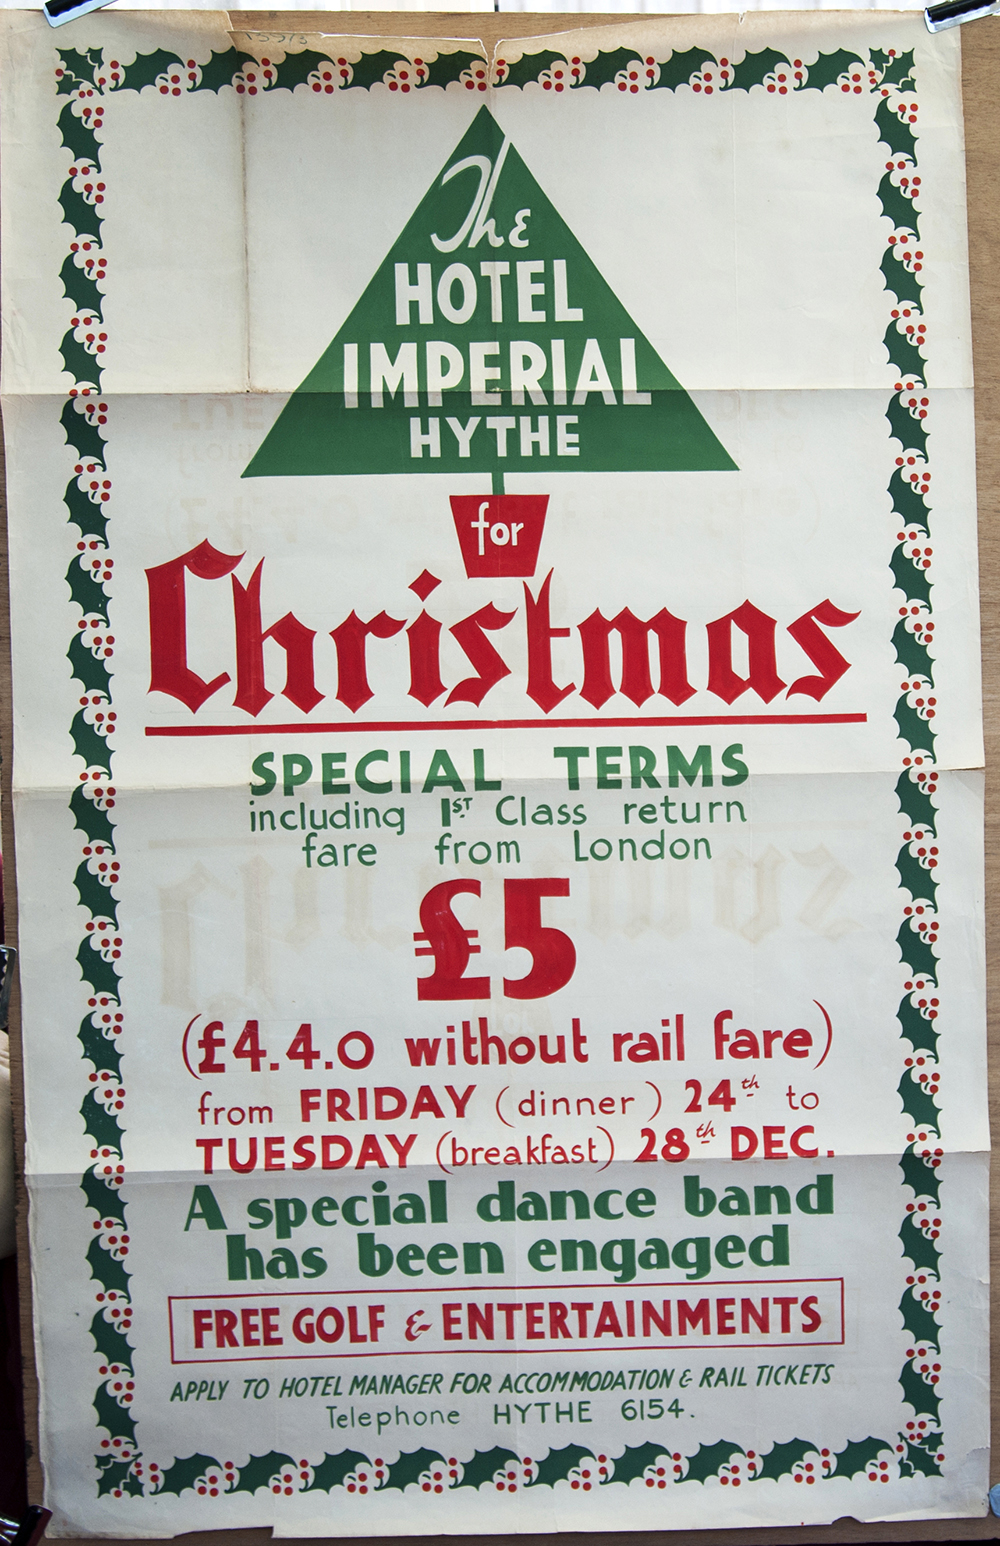 Poster The Hotel Imperial Hythe For Christmas,